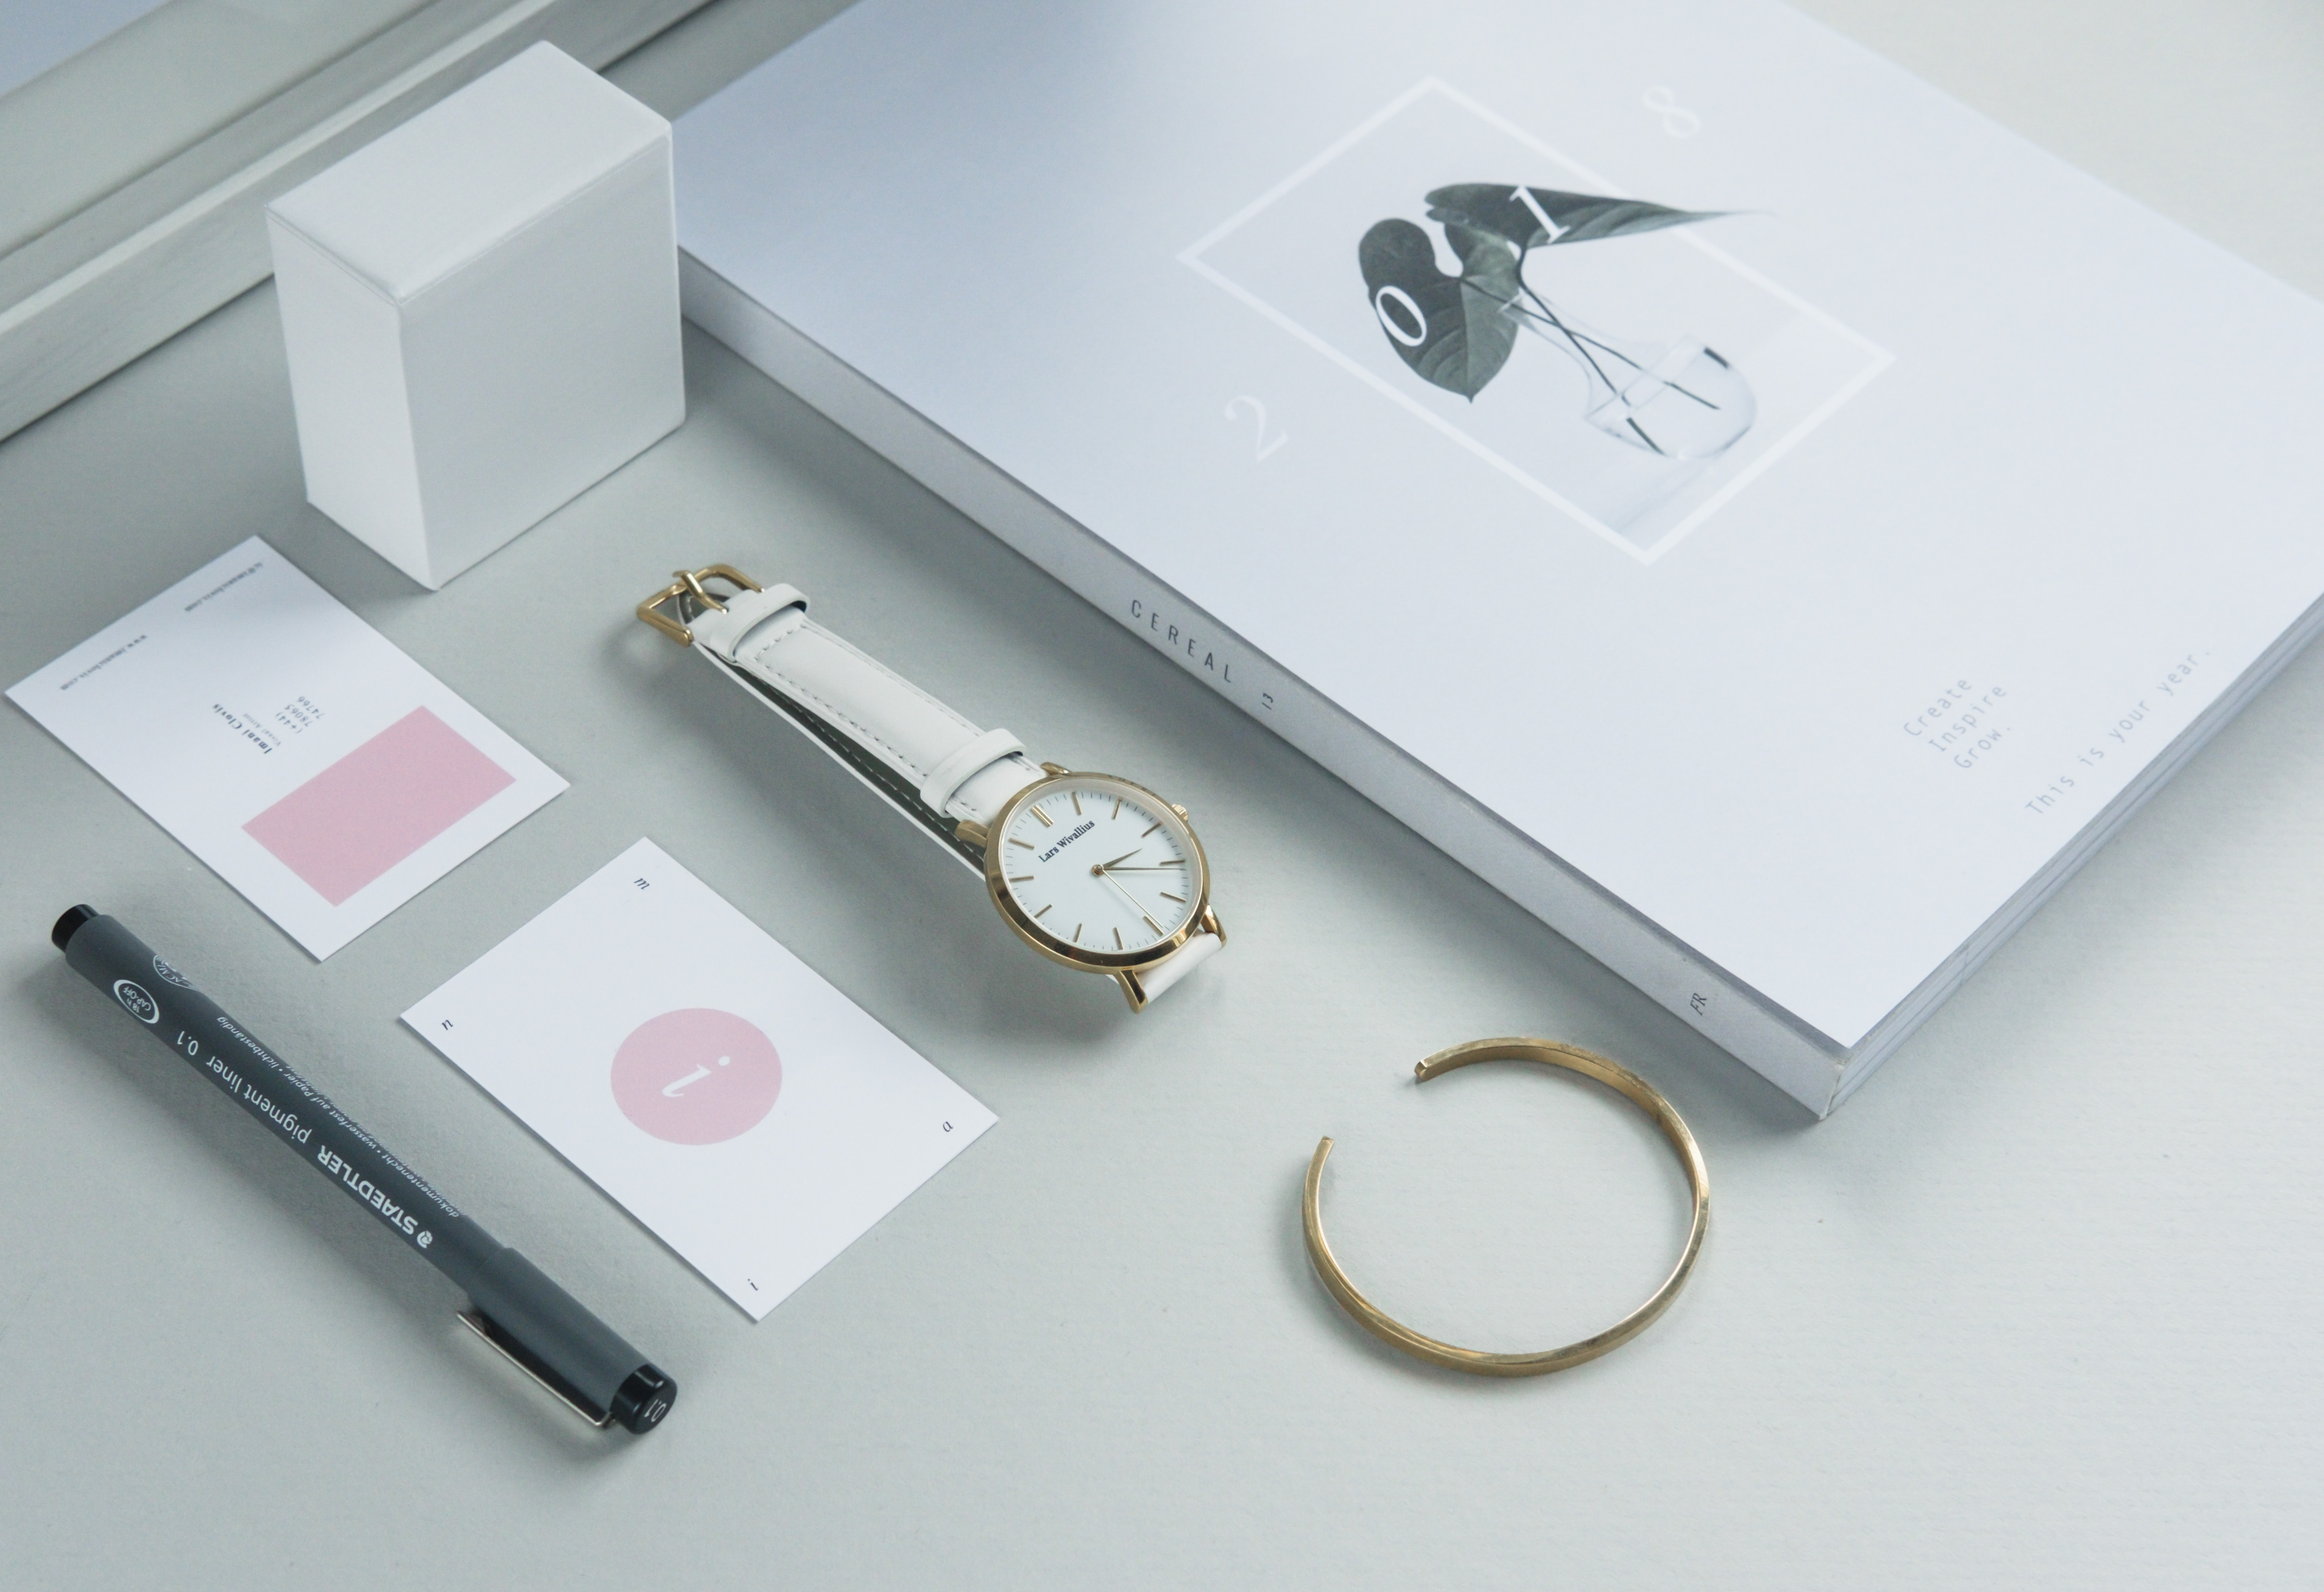 round gold-colored analog watch with white band